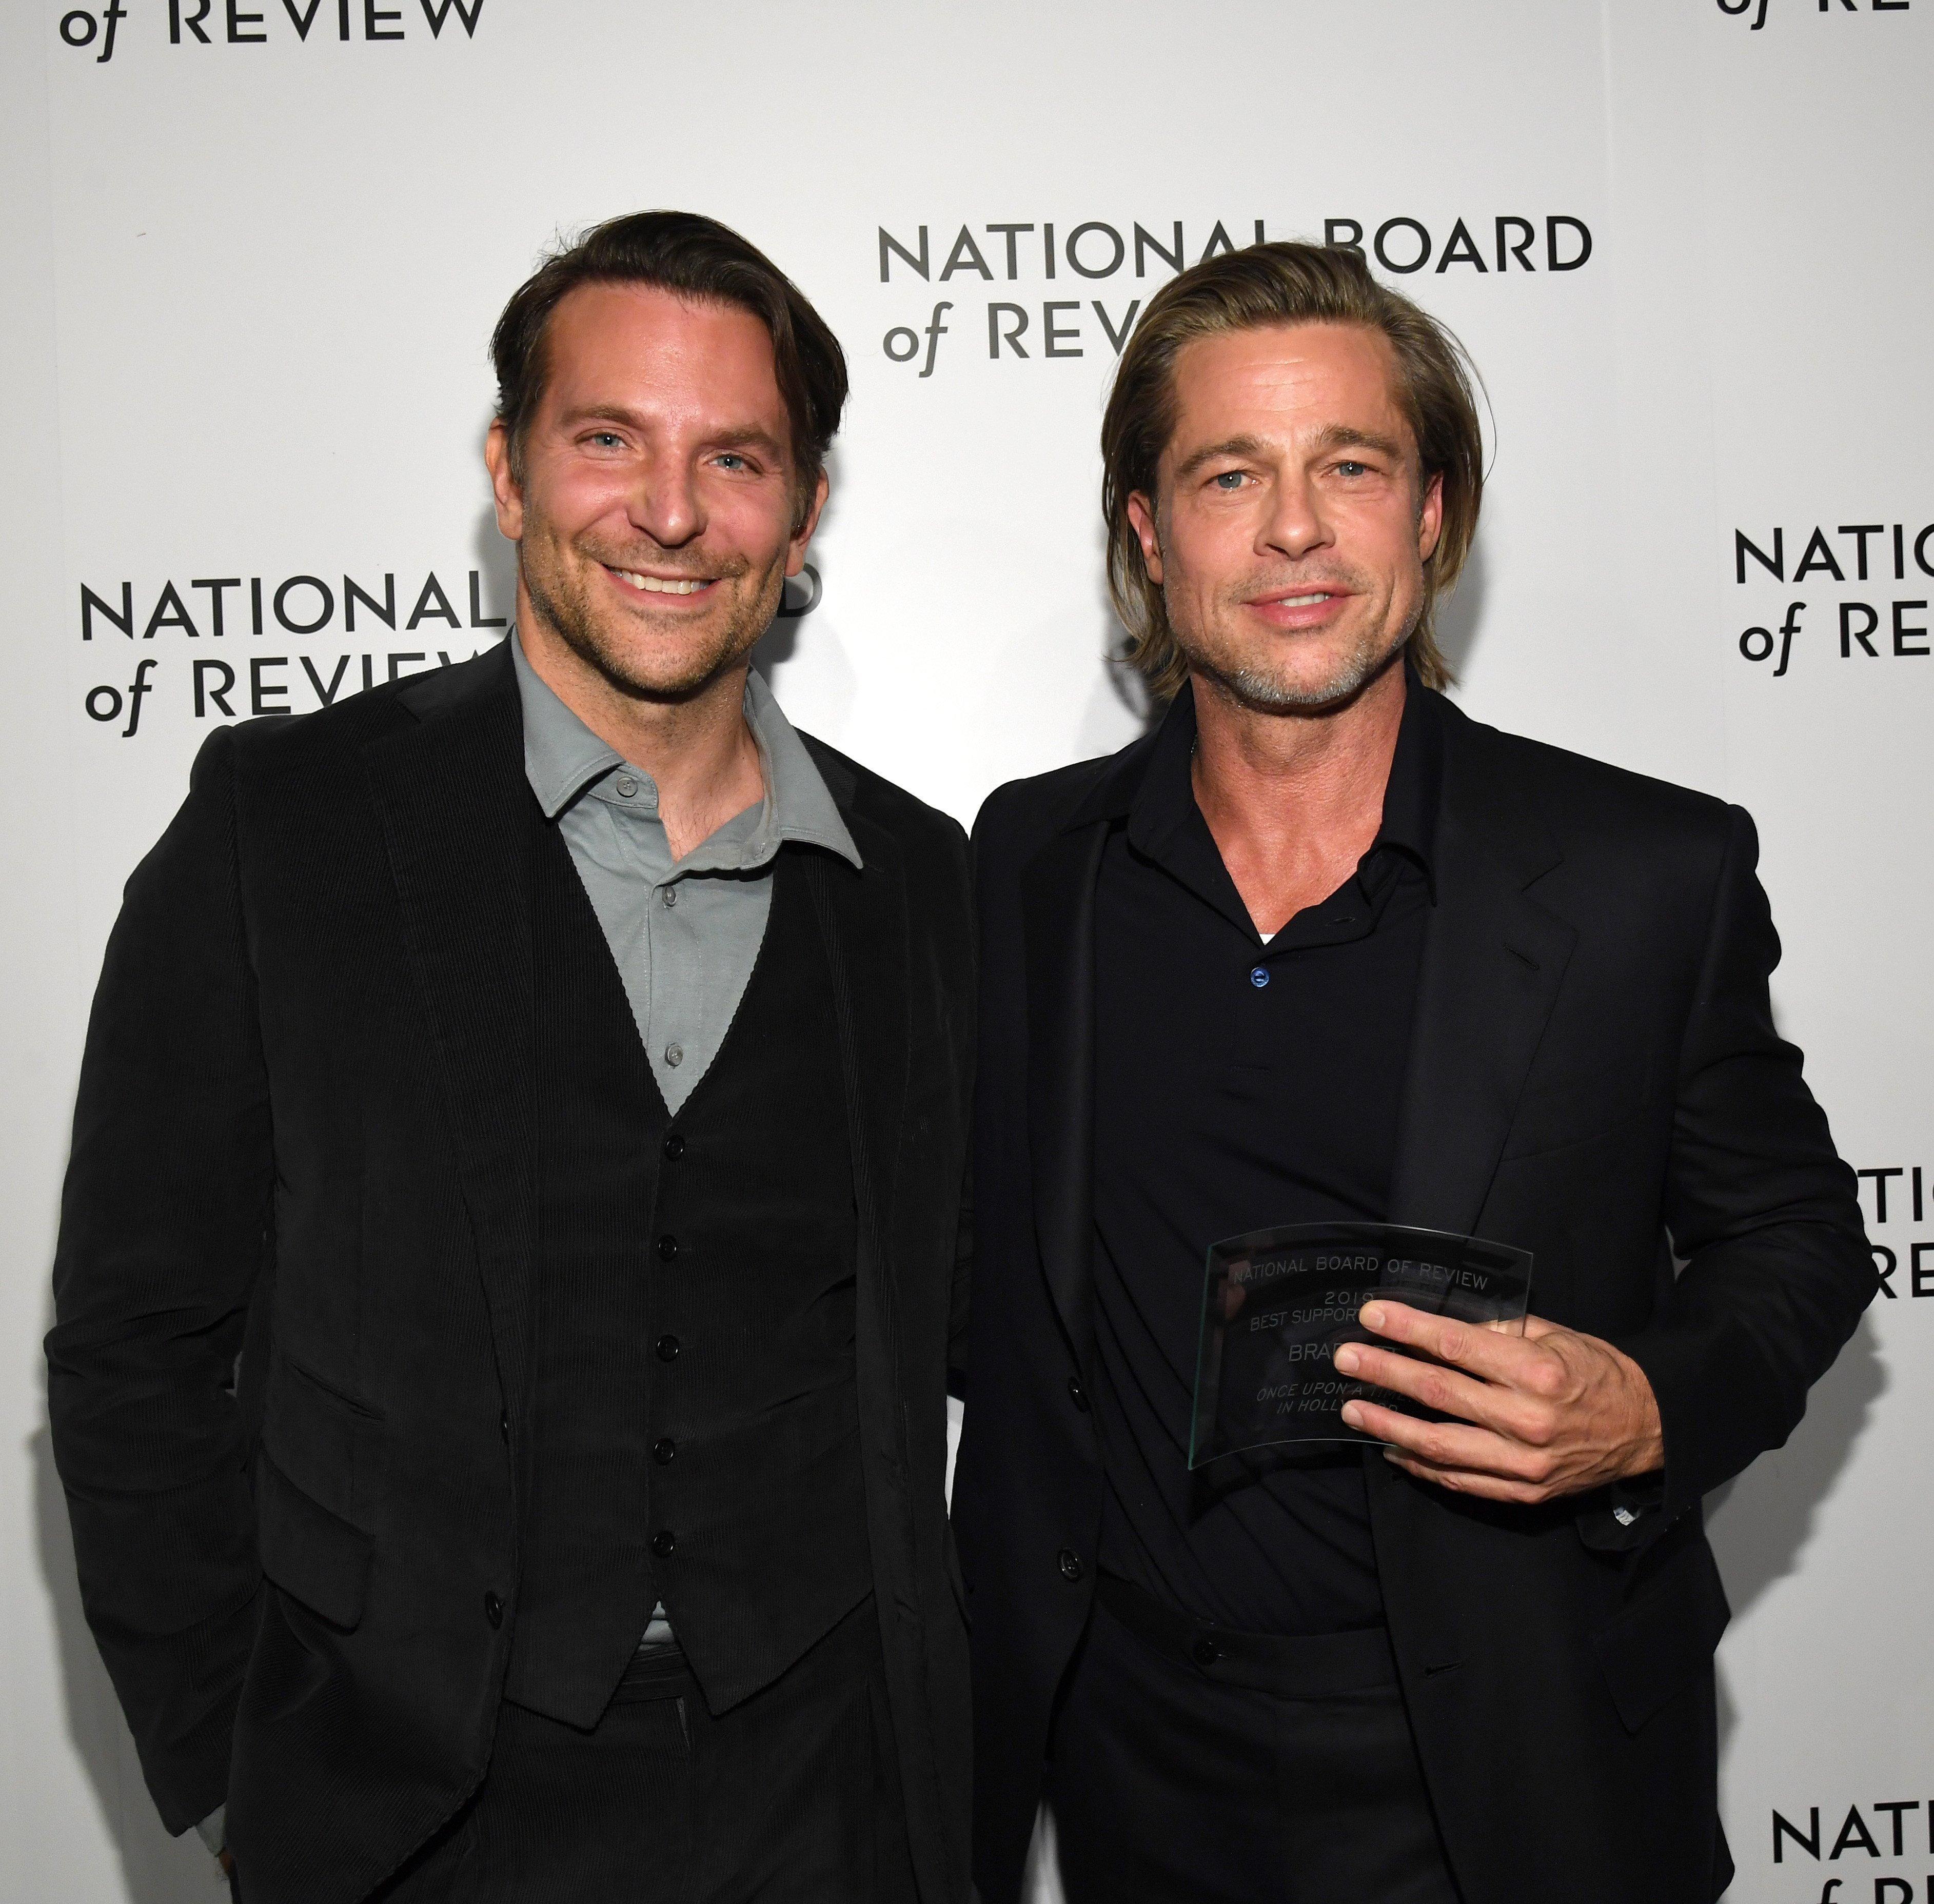 Bradley Cooper and Brad Pitt attend The National Board of Review Annual Awards Gala on January 08, 2020, in New York City. | Source: Getty Images.